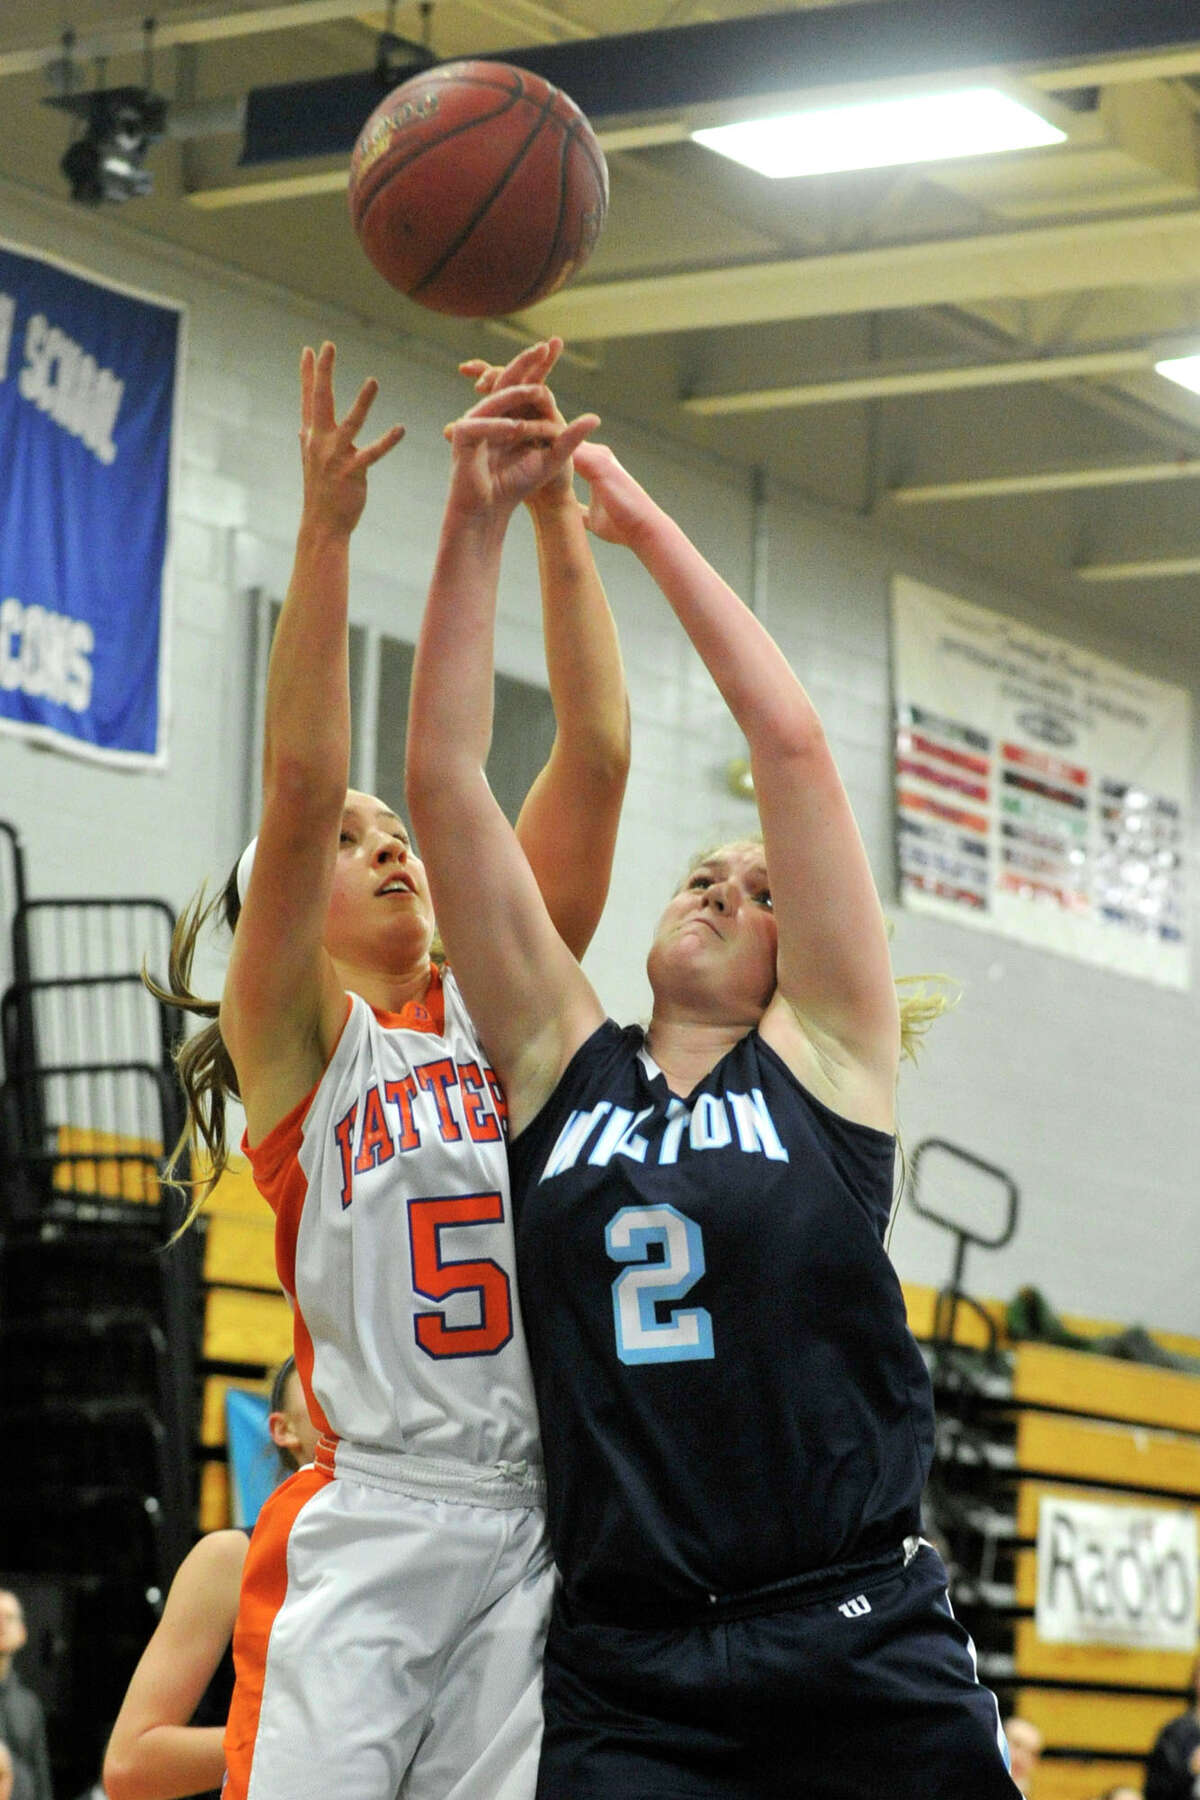 Wilton: Senior guard  Erin Cunningham is Wilton's all-time leading scorer with 1,130 points and averaged 16.4 points and 8.0 rebounds for the Warriors, who won the Class LL championship and reached the FCIAC semifinals.